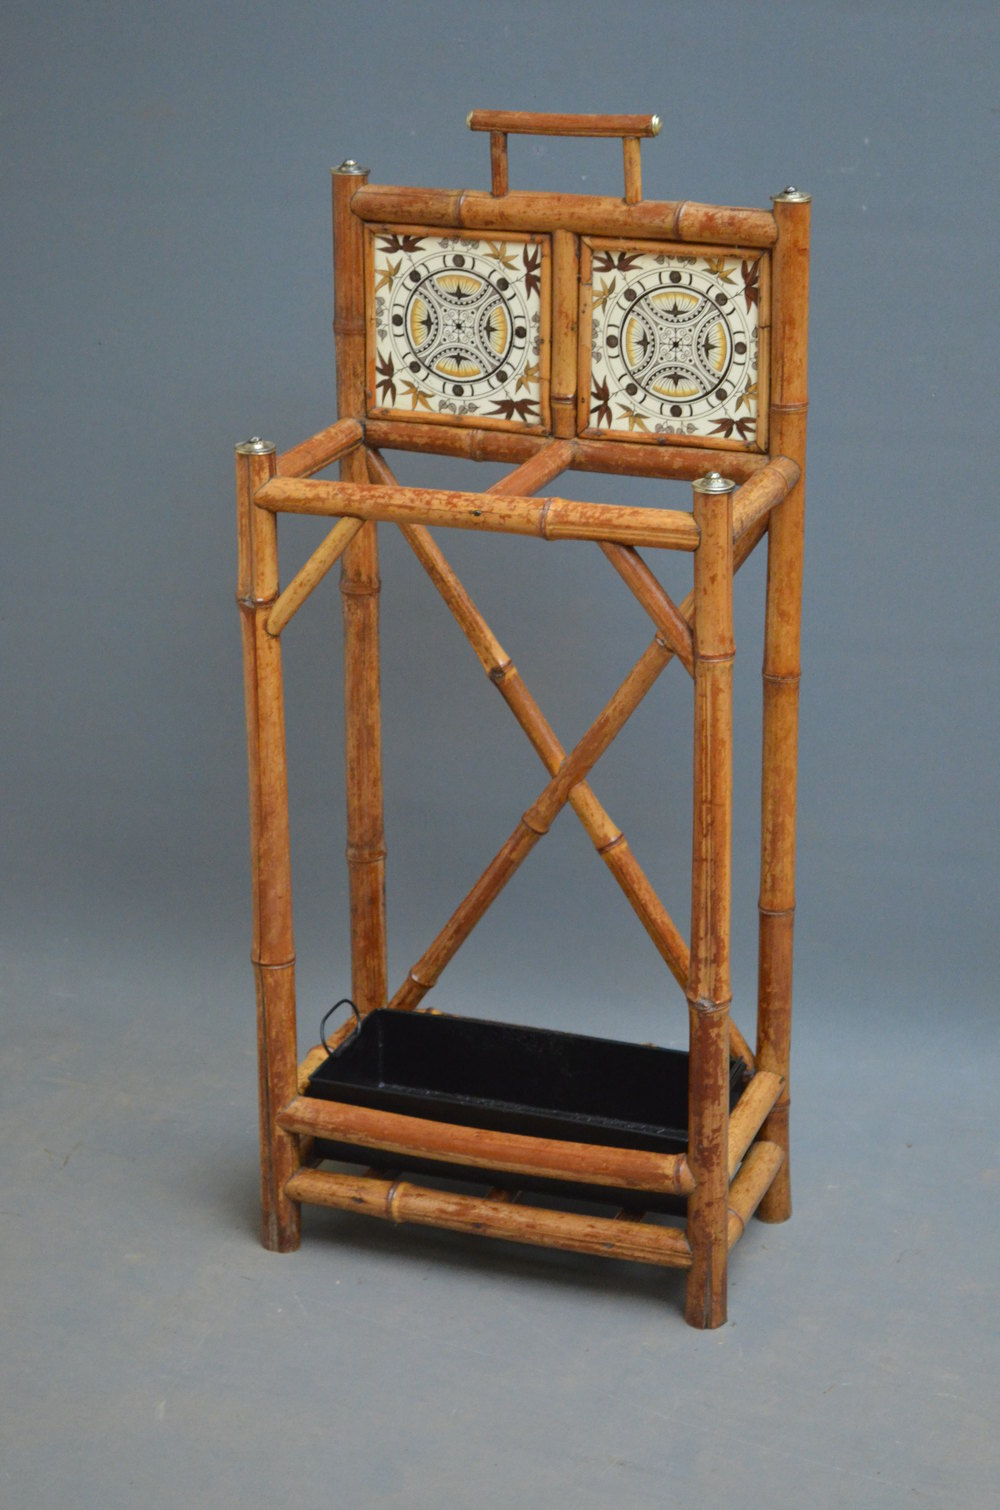 bamboo chairs for sale diy flower chair sash late victorian umbrella stand - antiques atlas